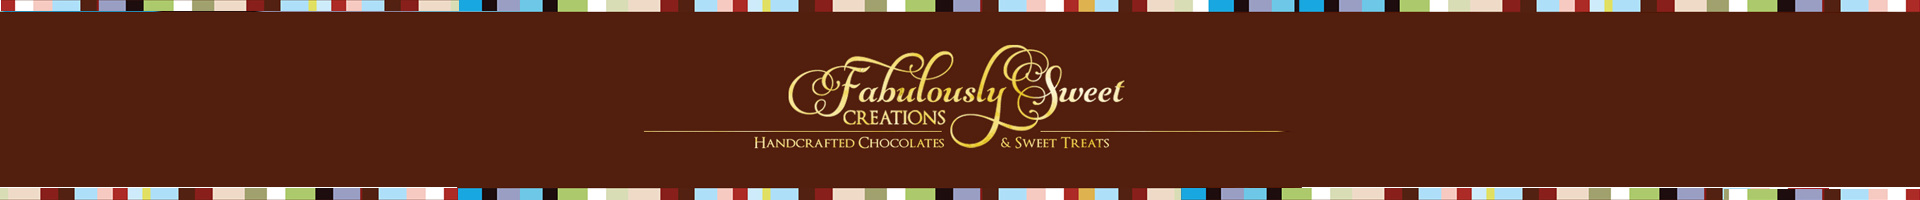 Fabulously Sweet Creations Logo